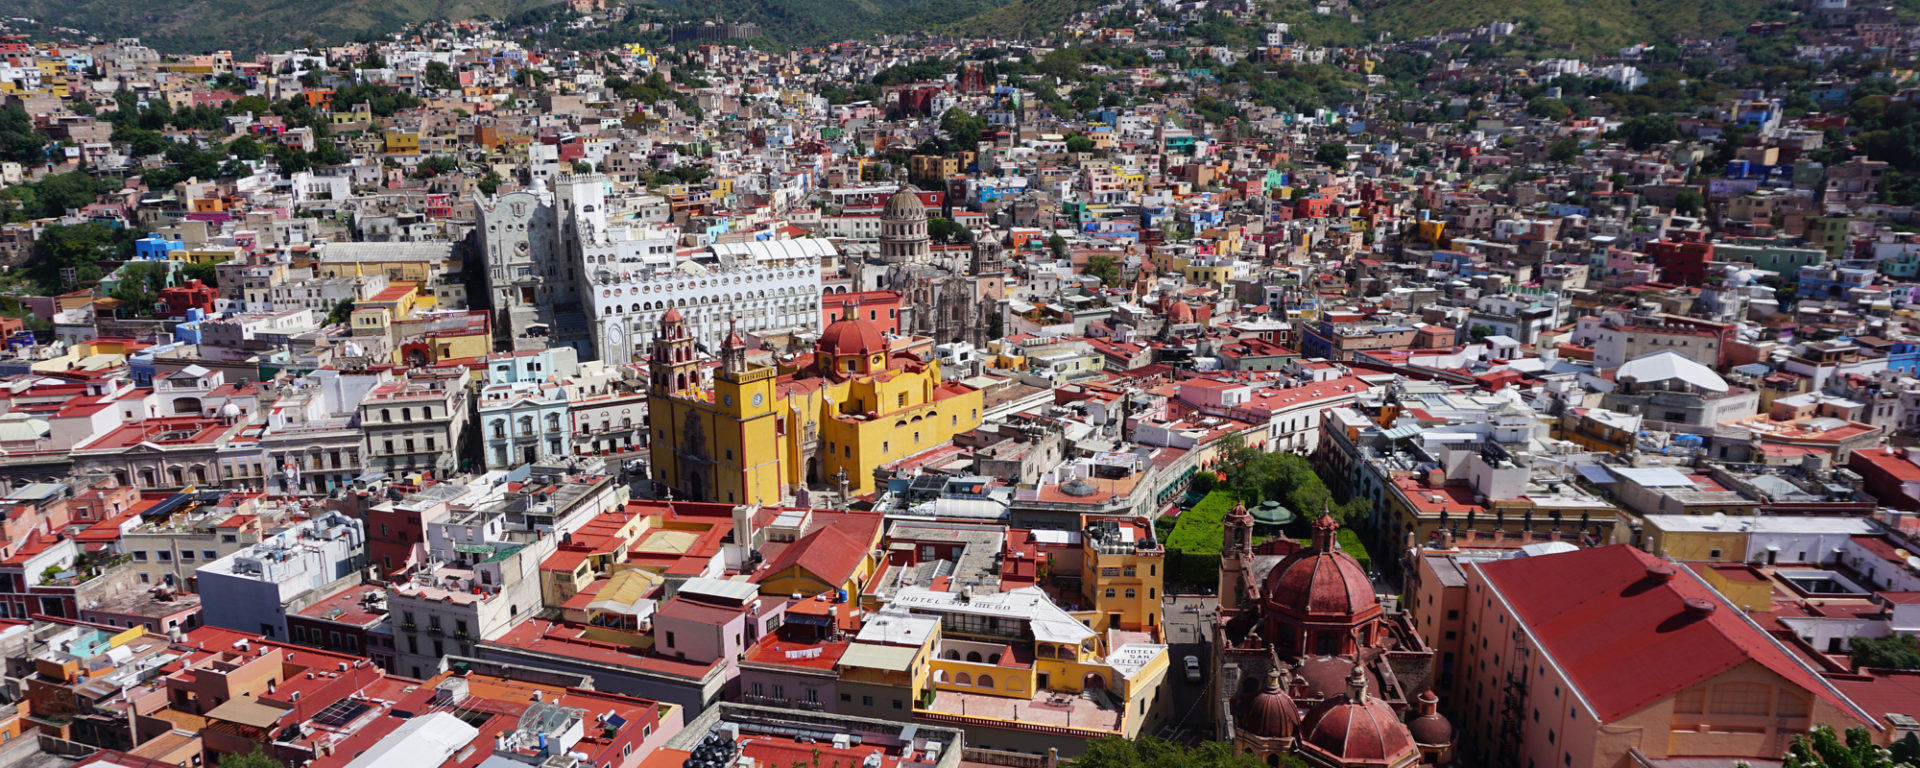 Panoramic of Guanajuato collonial buildings home of the Festival Cervantino